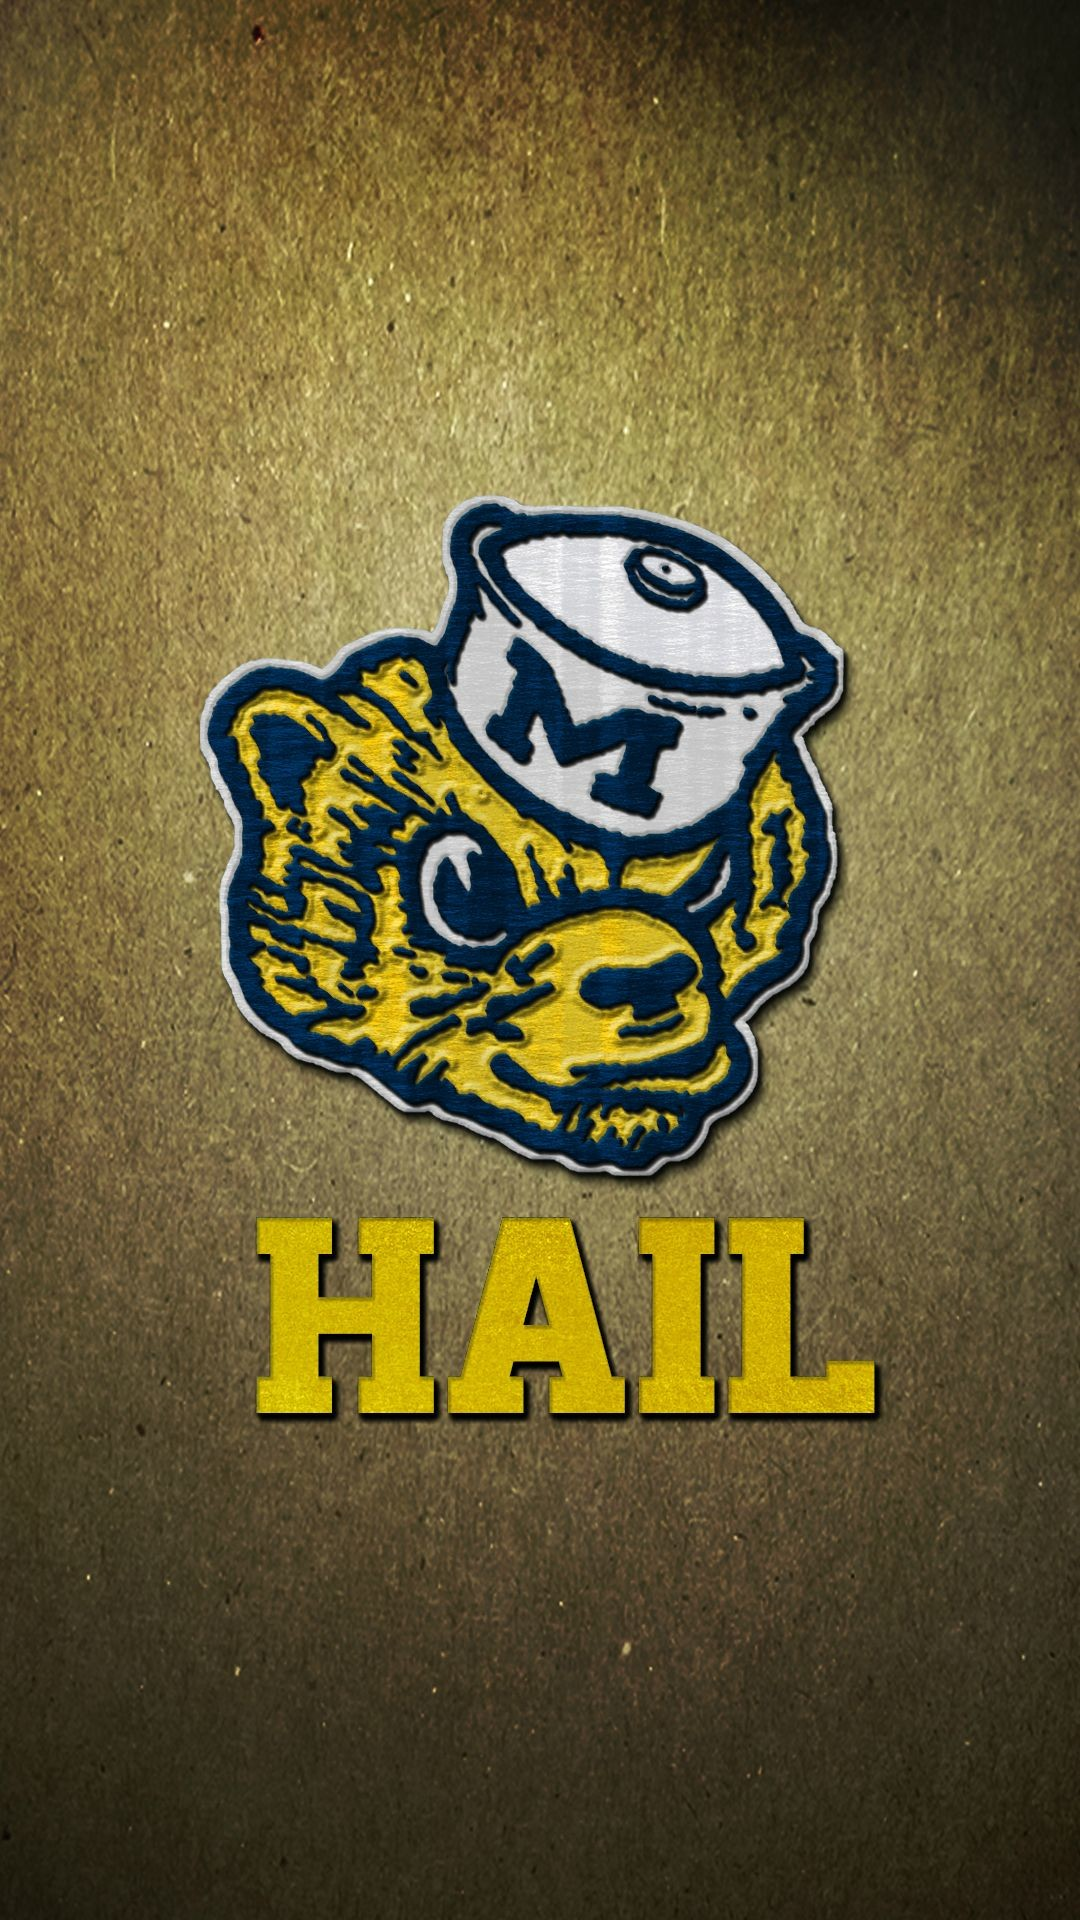 1080x1920 University Of Michigan Football Wallpaper SuperSweet